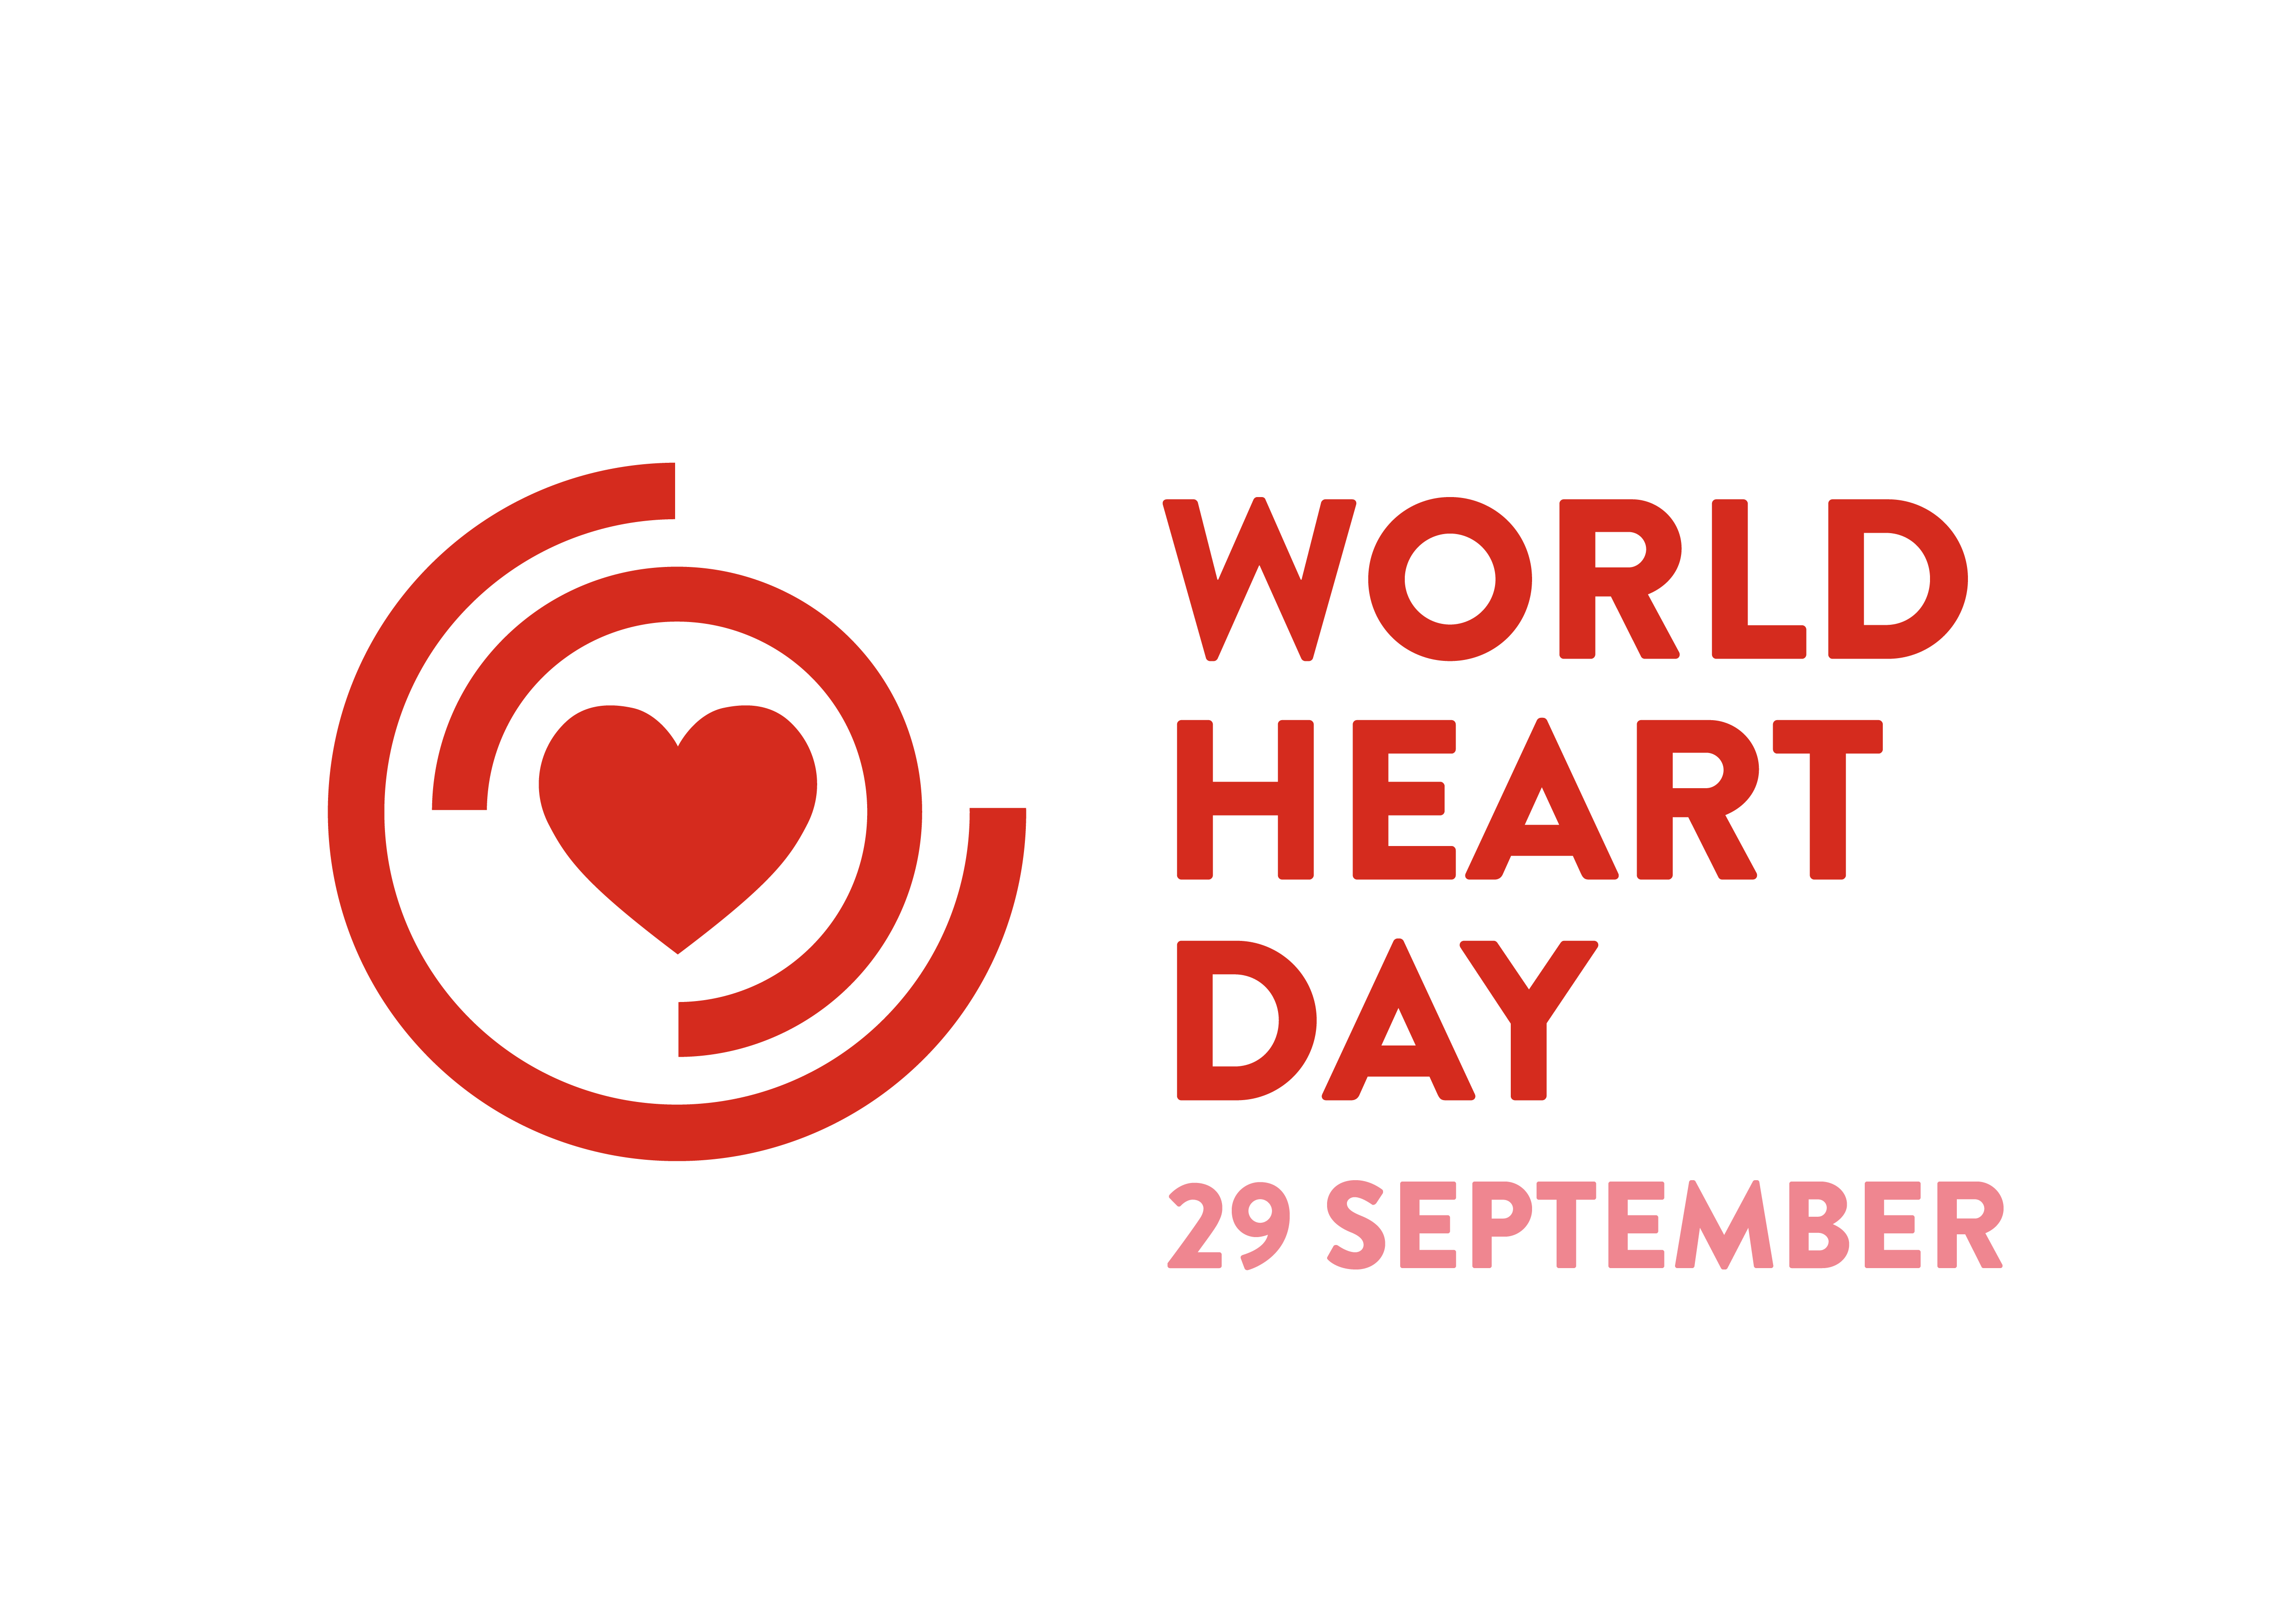 World Heart Day is celebrated on 29 September every year